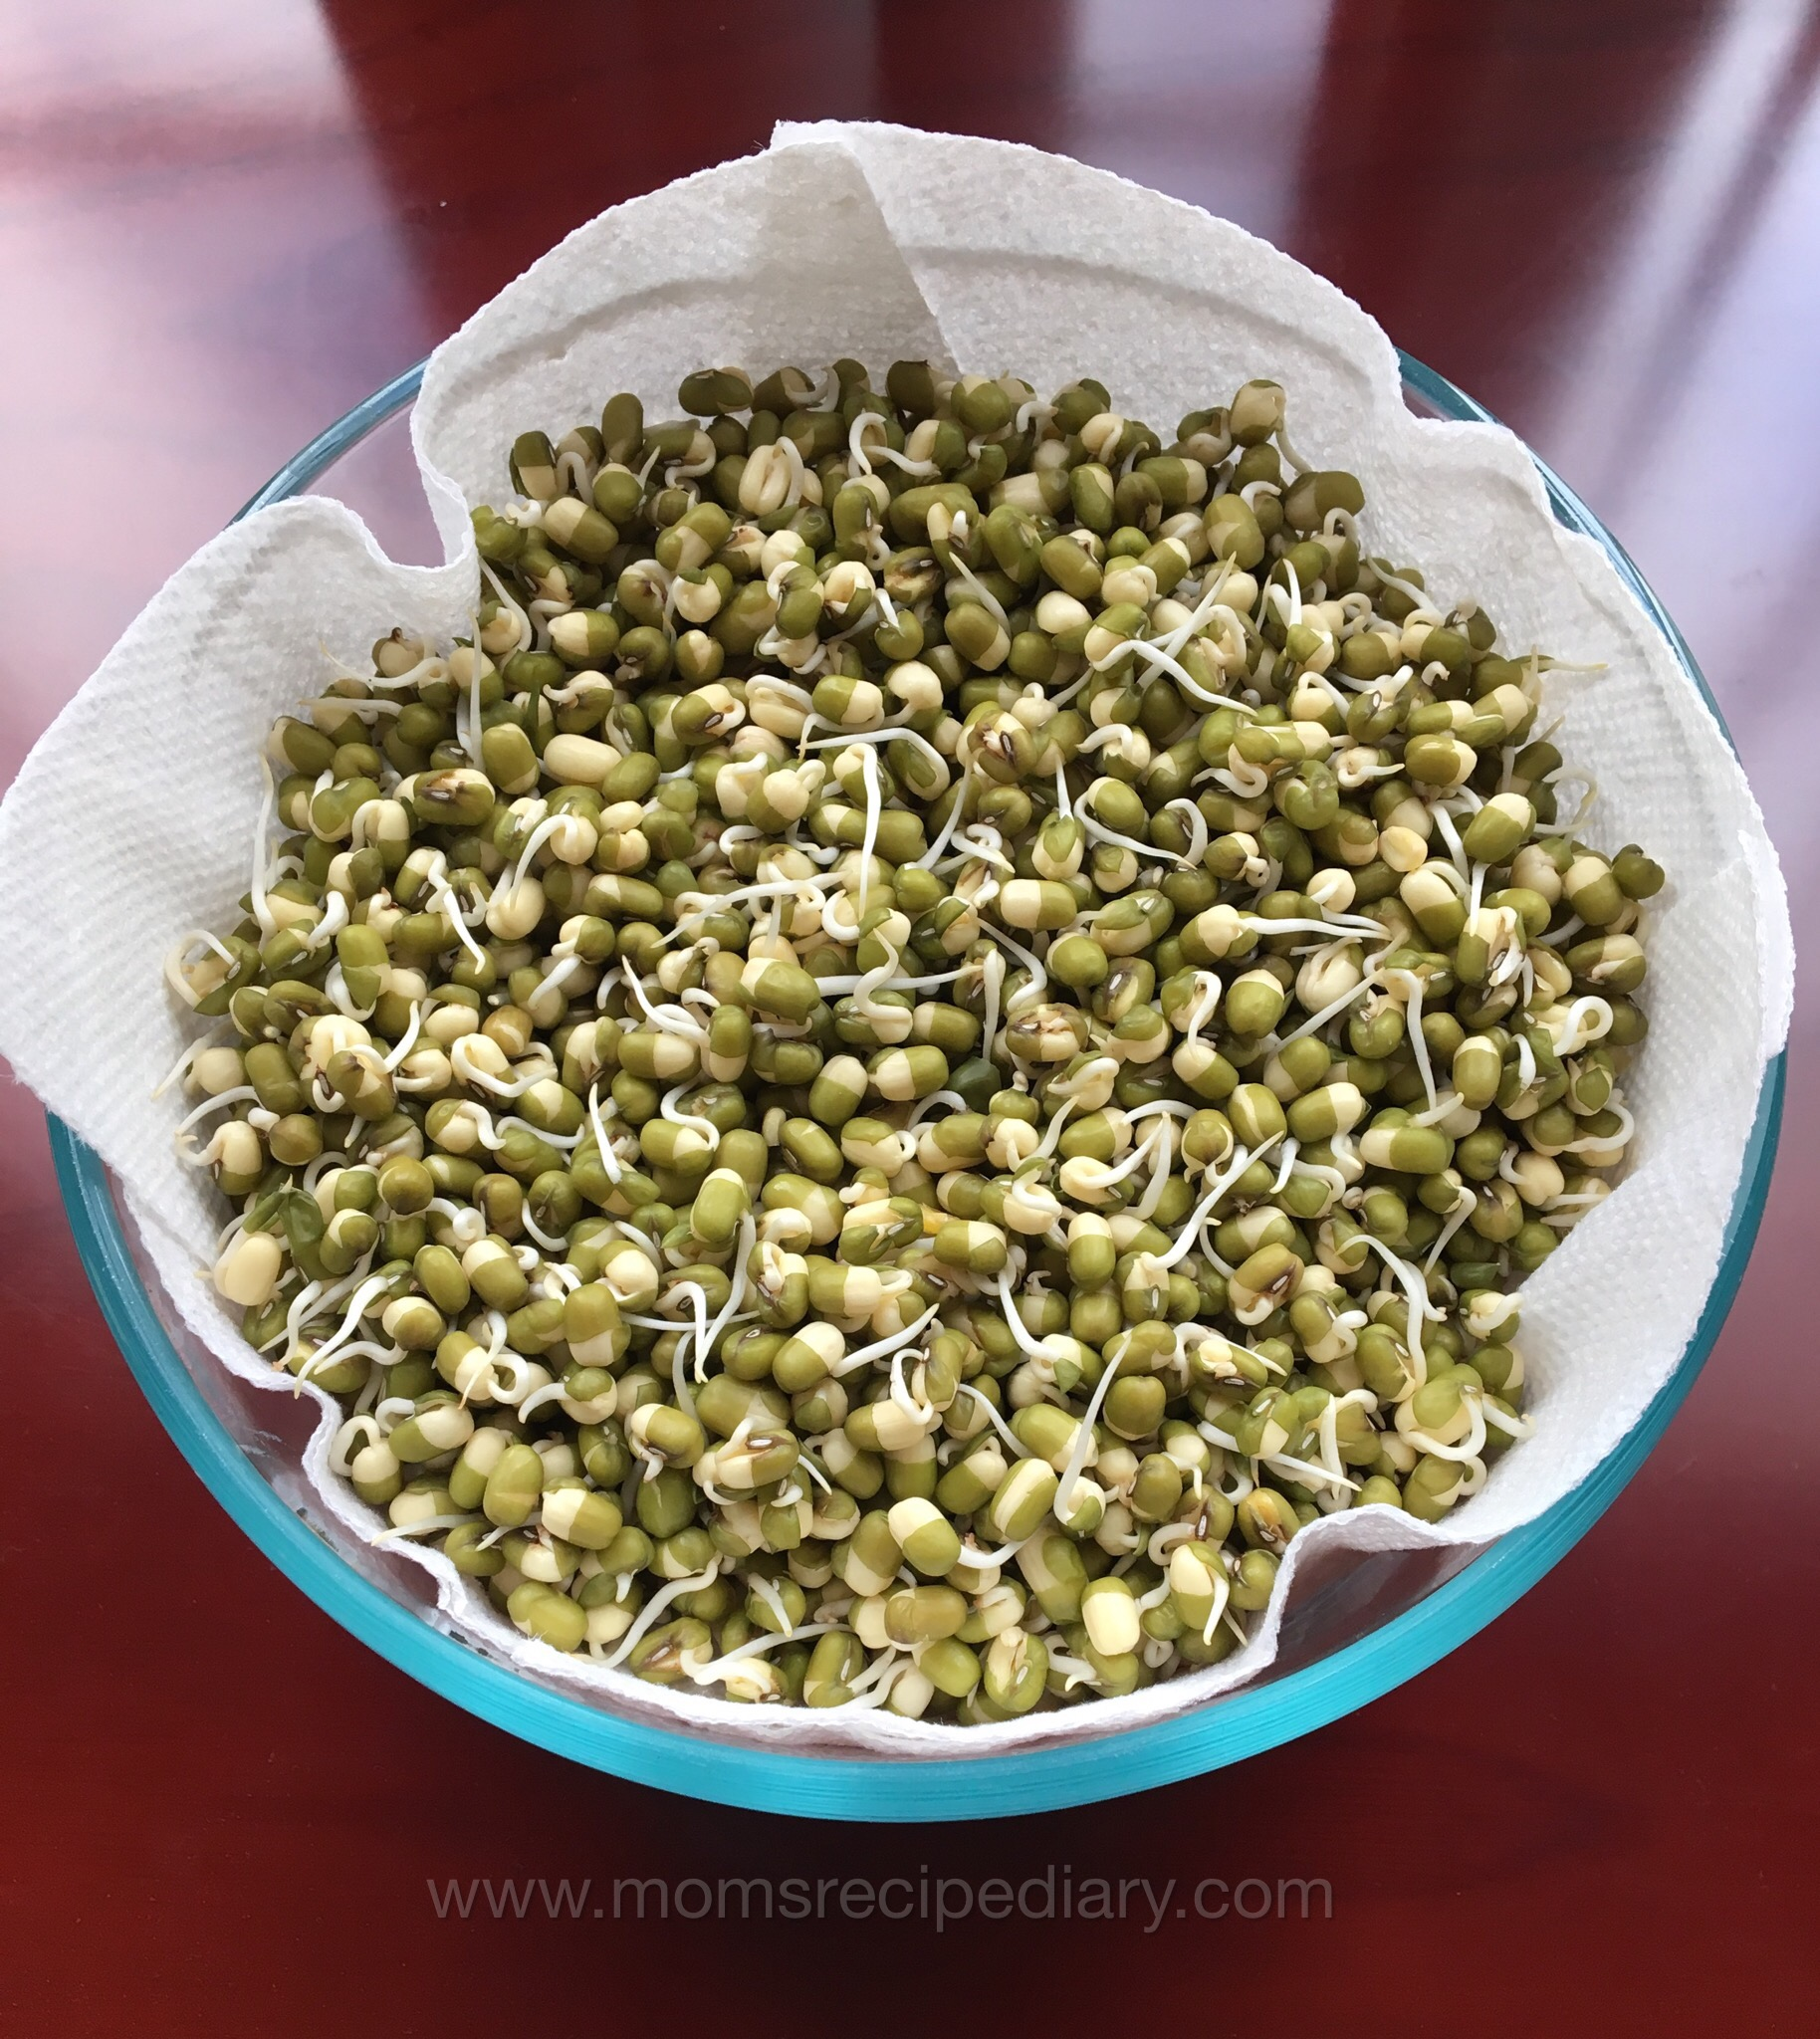 How to sprout beans – Instant Pot Method